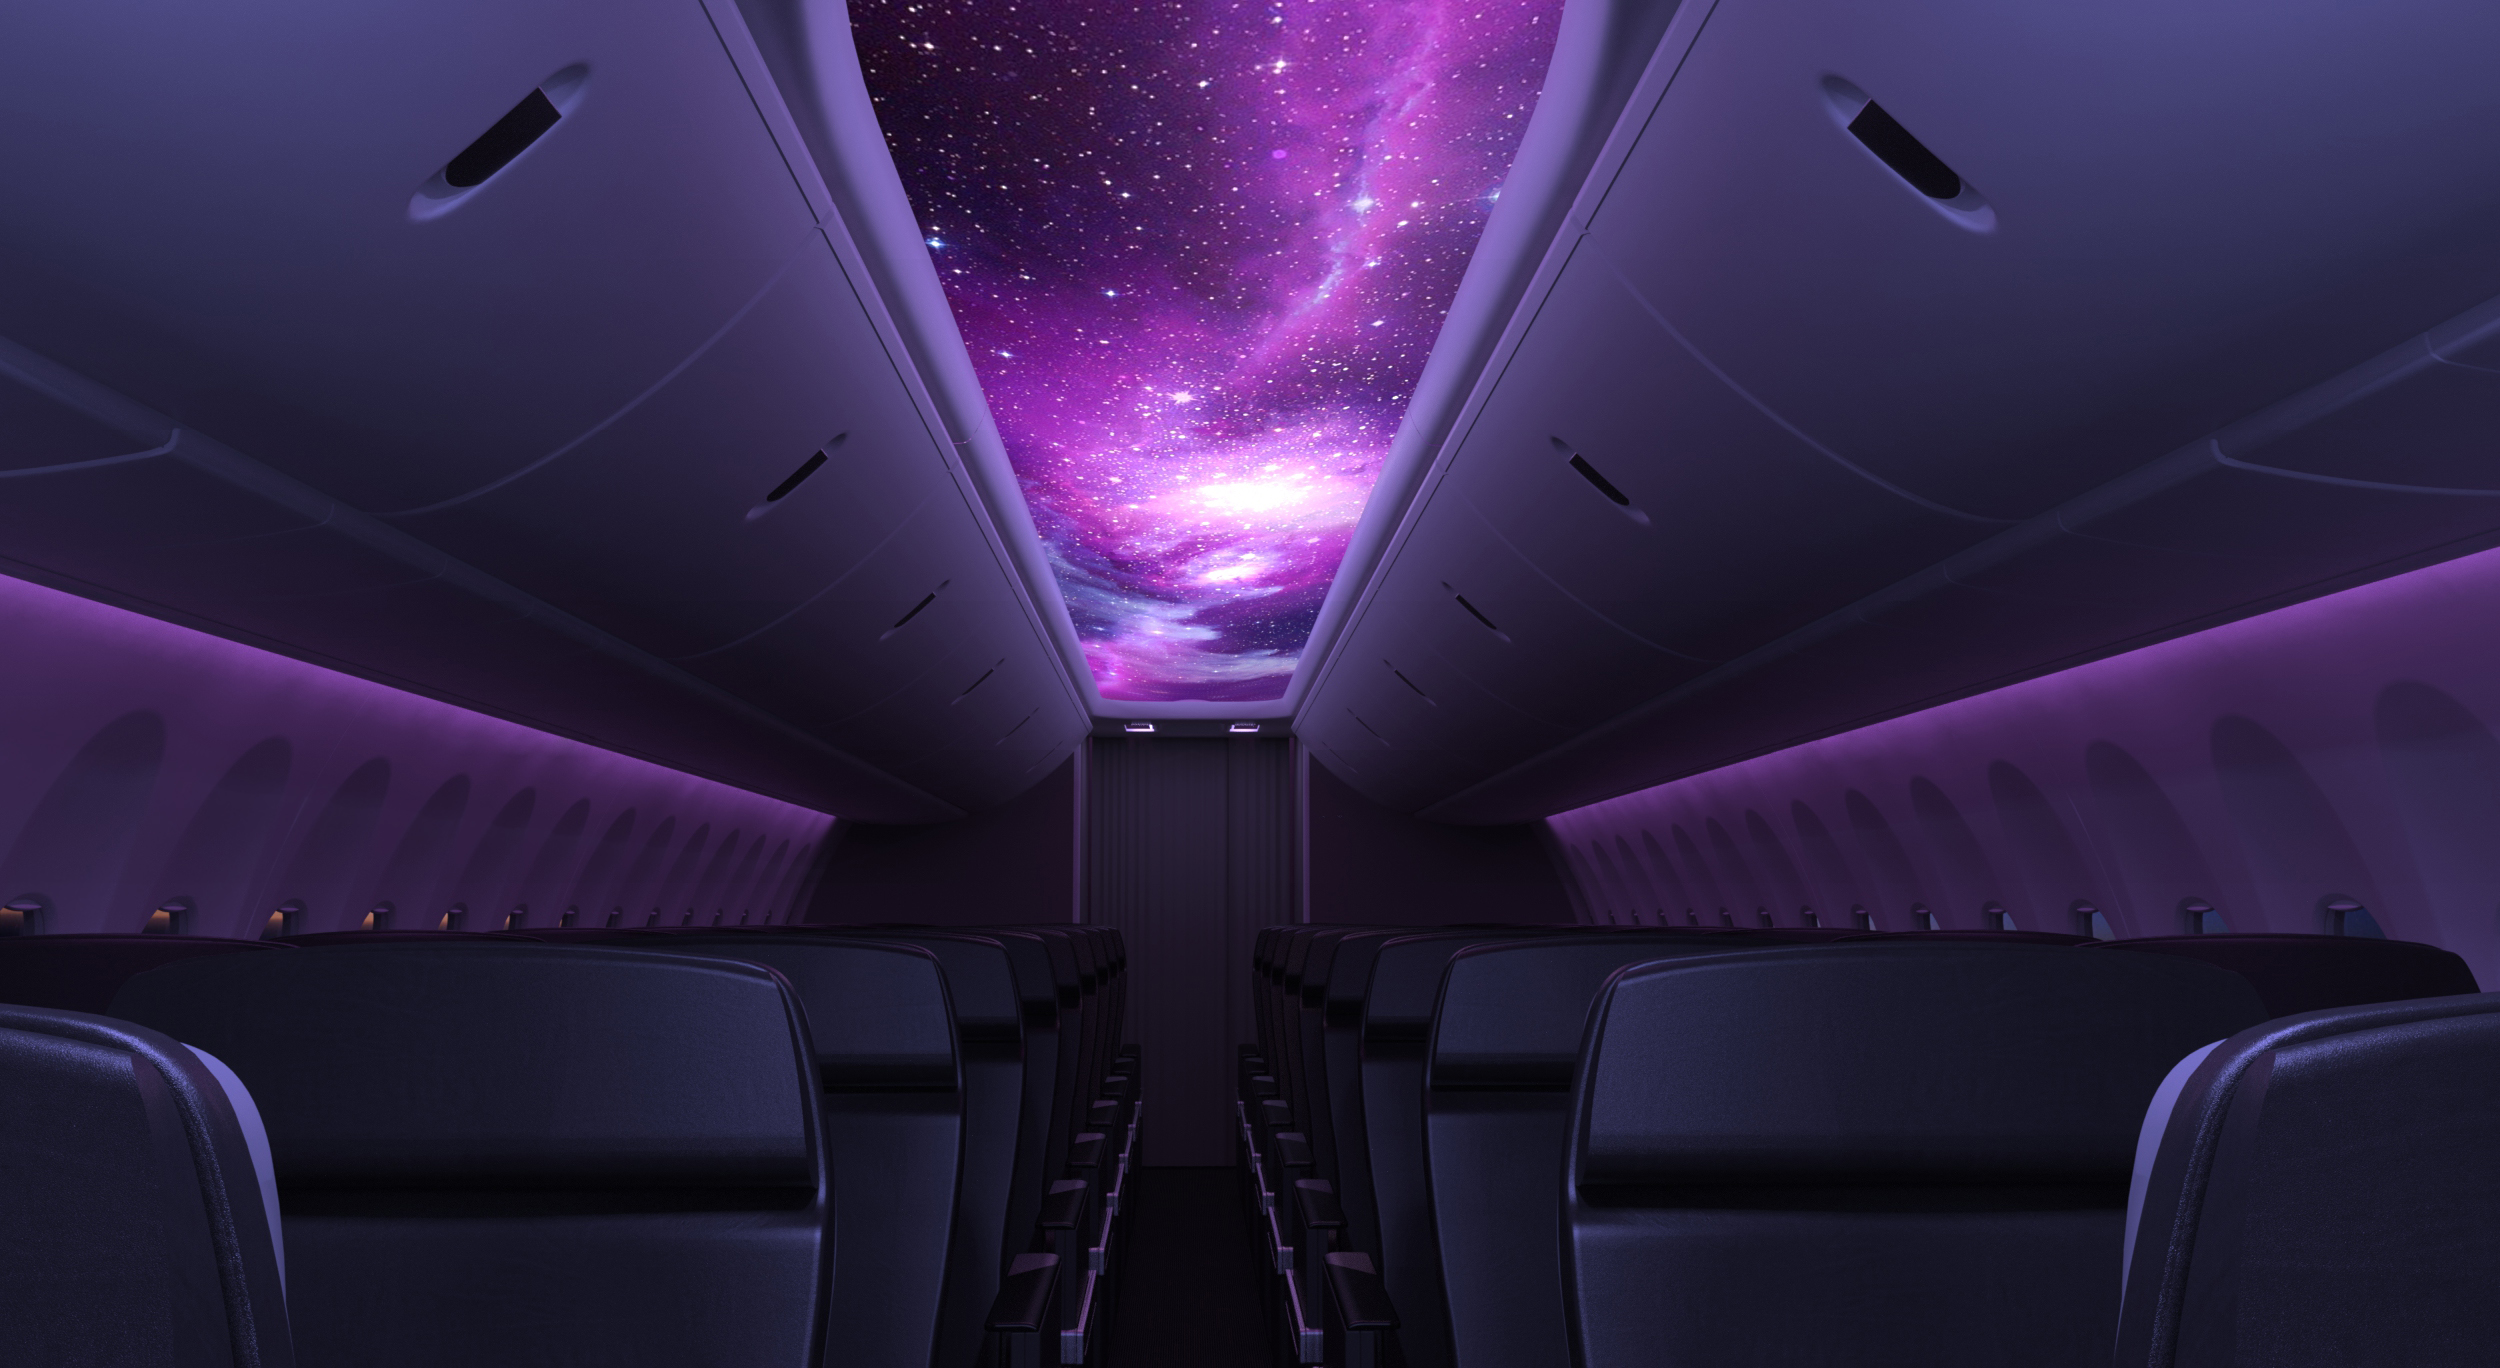 The Secant Luminous Panel by Rockwell Collins sees special lighting being installed in the interior paneling of aircrafts to display visuals and help improve sleep.